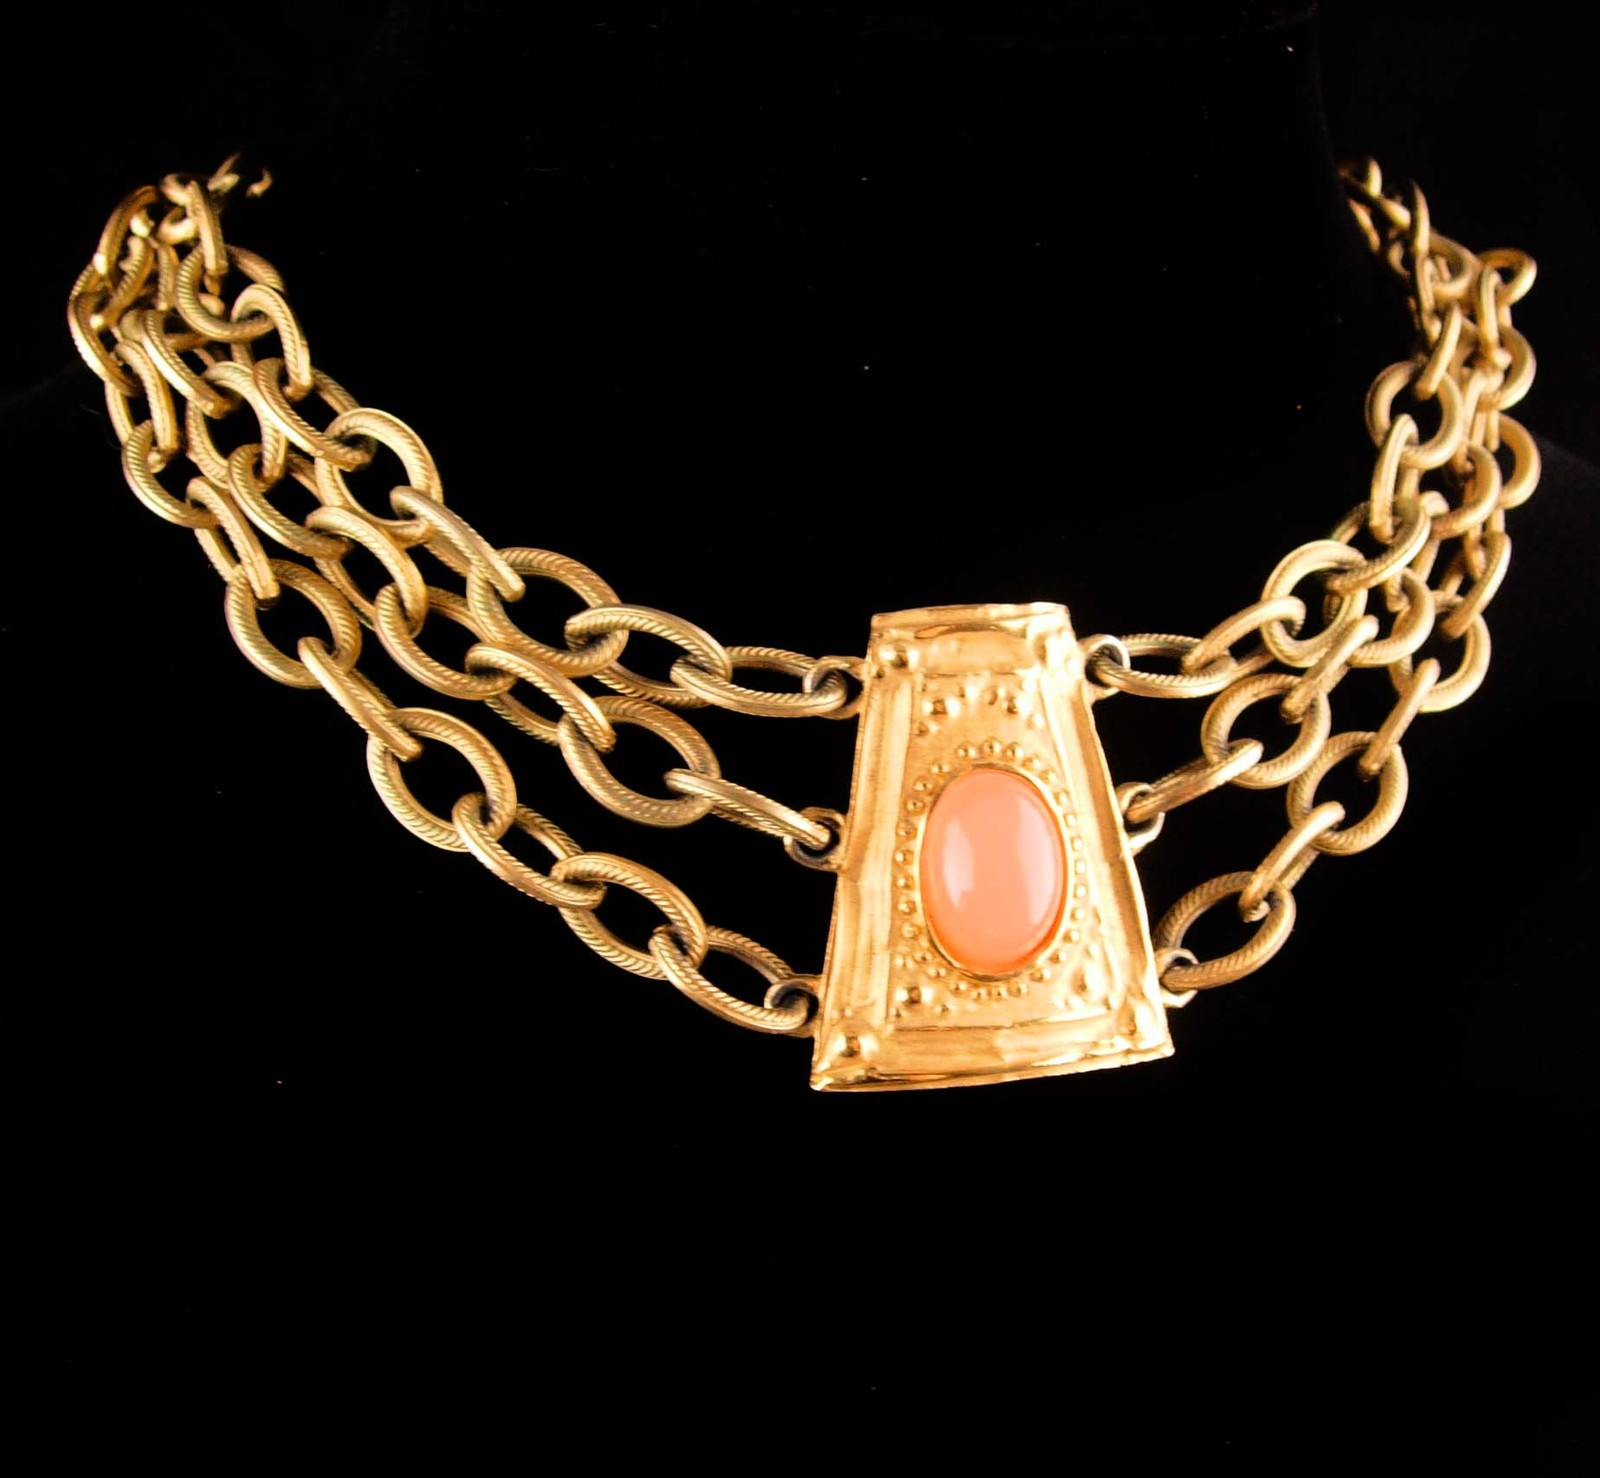 Vintage Givenchy necklace - signed Bijoux Couture Designer jewelry - designer